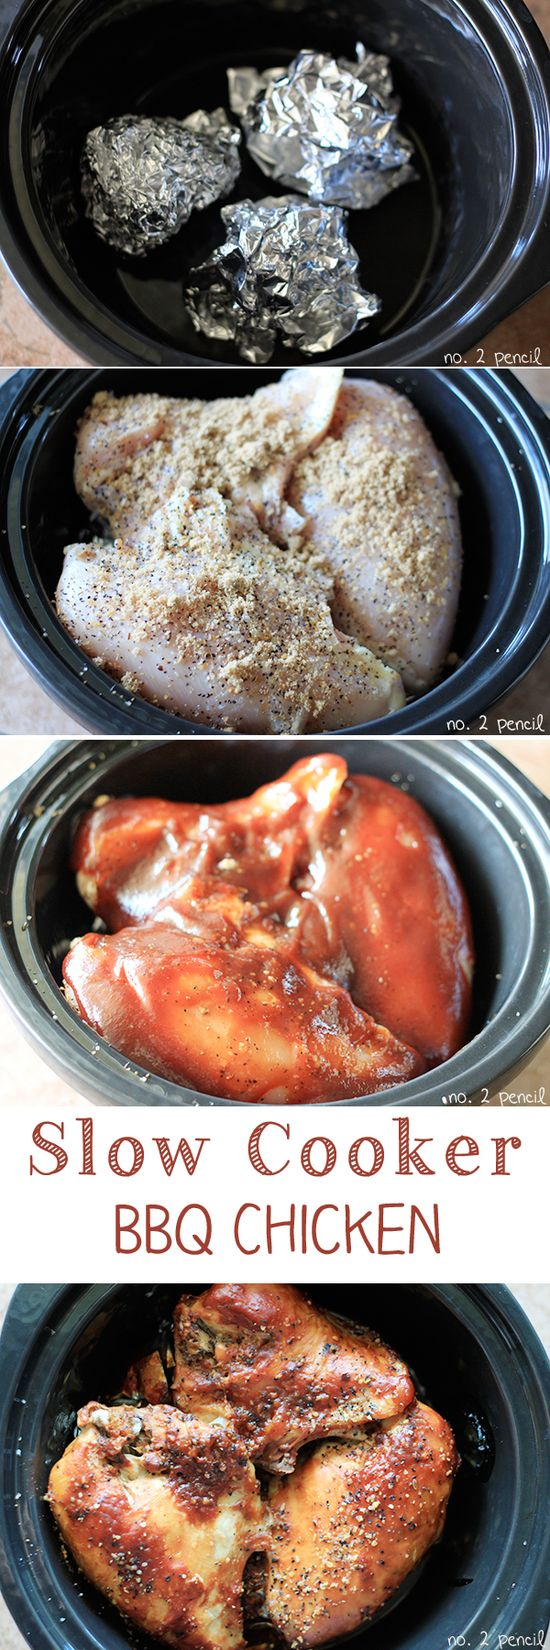 Slow Cooker BBQ Chicken - Perfectly cooked BBQ chicken breasts in the slow cooker!